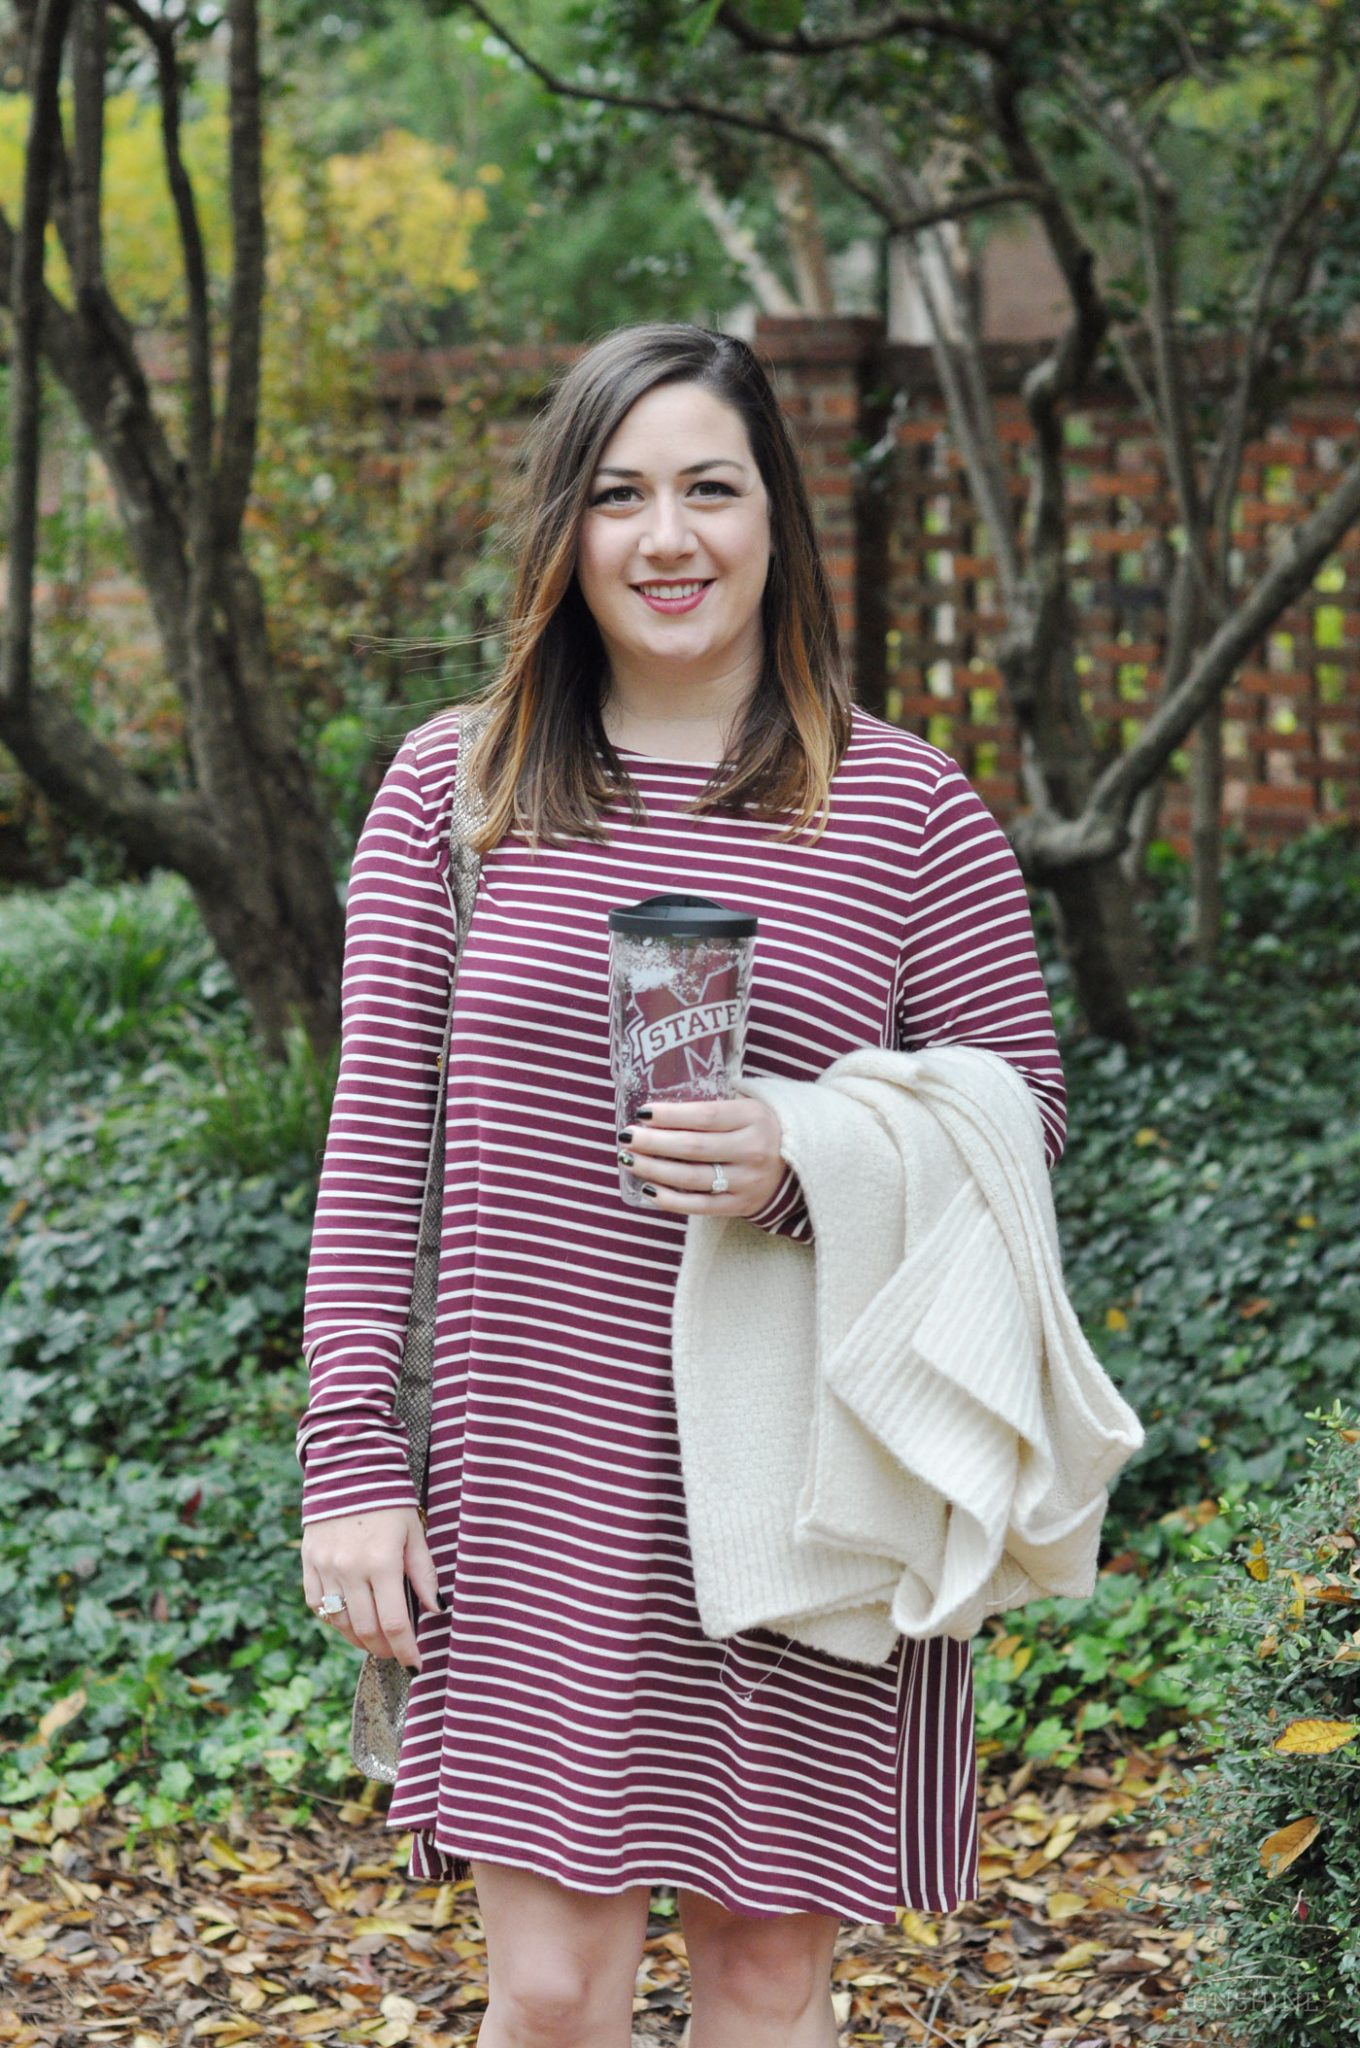 Collegiate Tervis Tumbler, Old Navy Swing Dress, and LOFT Sweater Vest